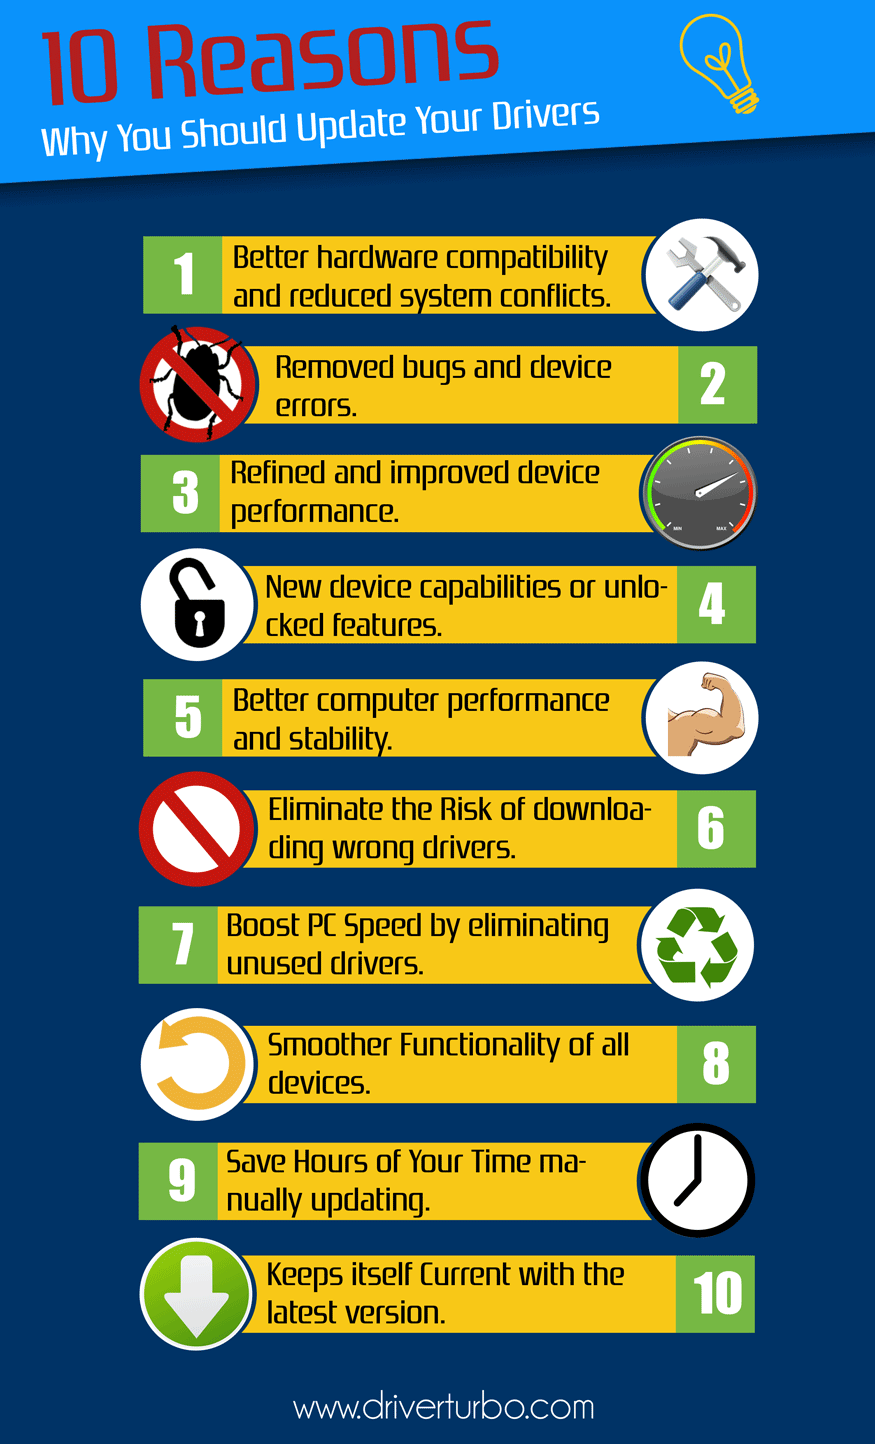 Infographic - Why You Should Update Your Drivers